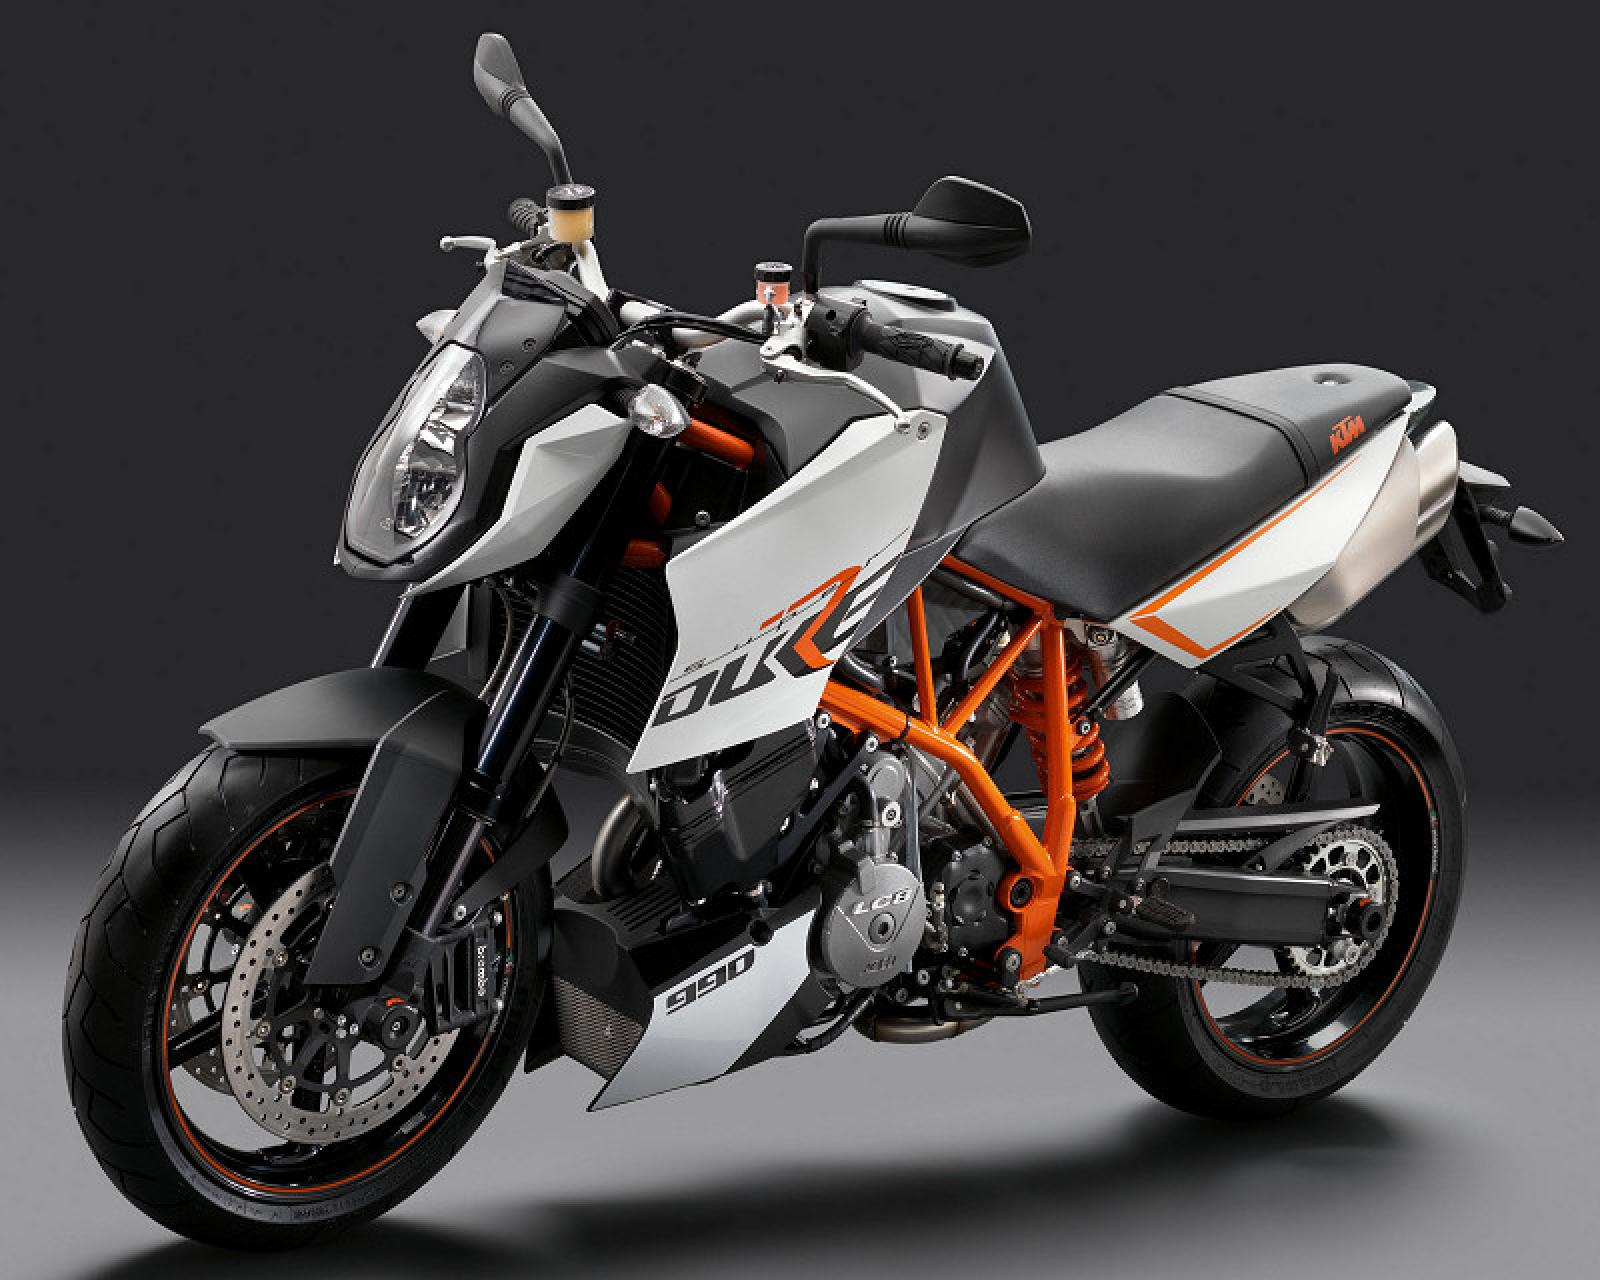 2006 ktm 990 duke rr moto zombdrive com. Black Bedroom Furniture Sets. Home Design Ideas